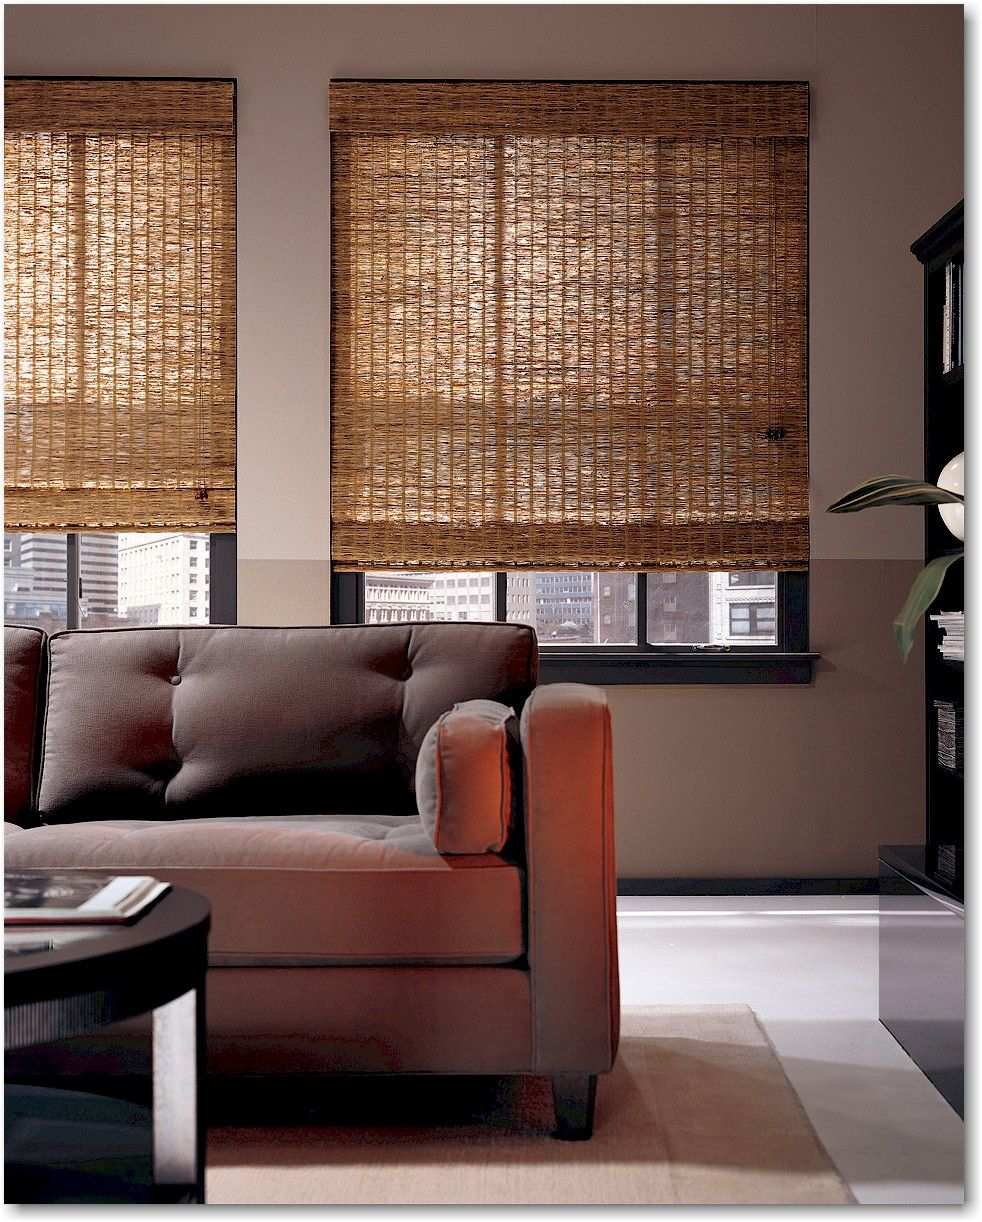 Hunter Douglas Provenance Woven Wood Shades For Front Door Window Allows Light But Adds Privacy